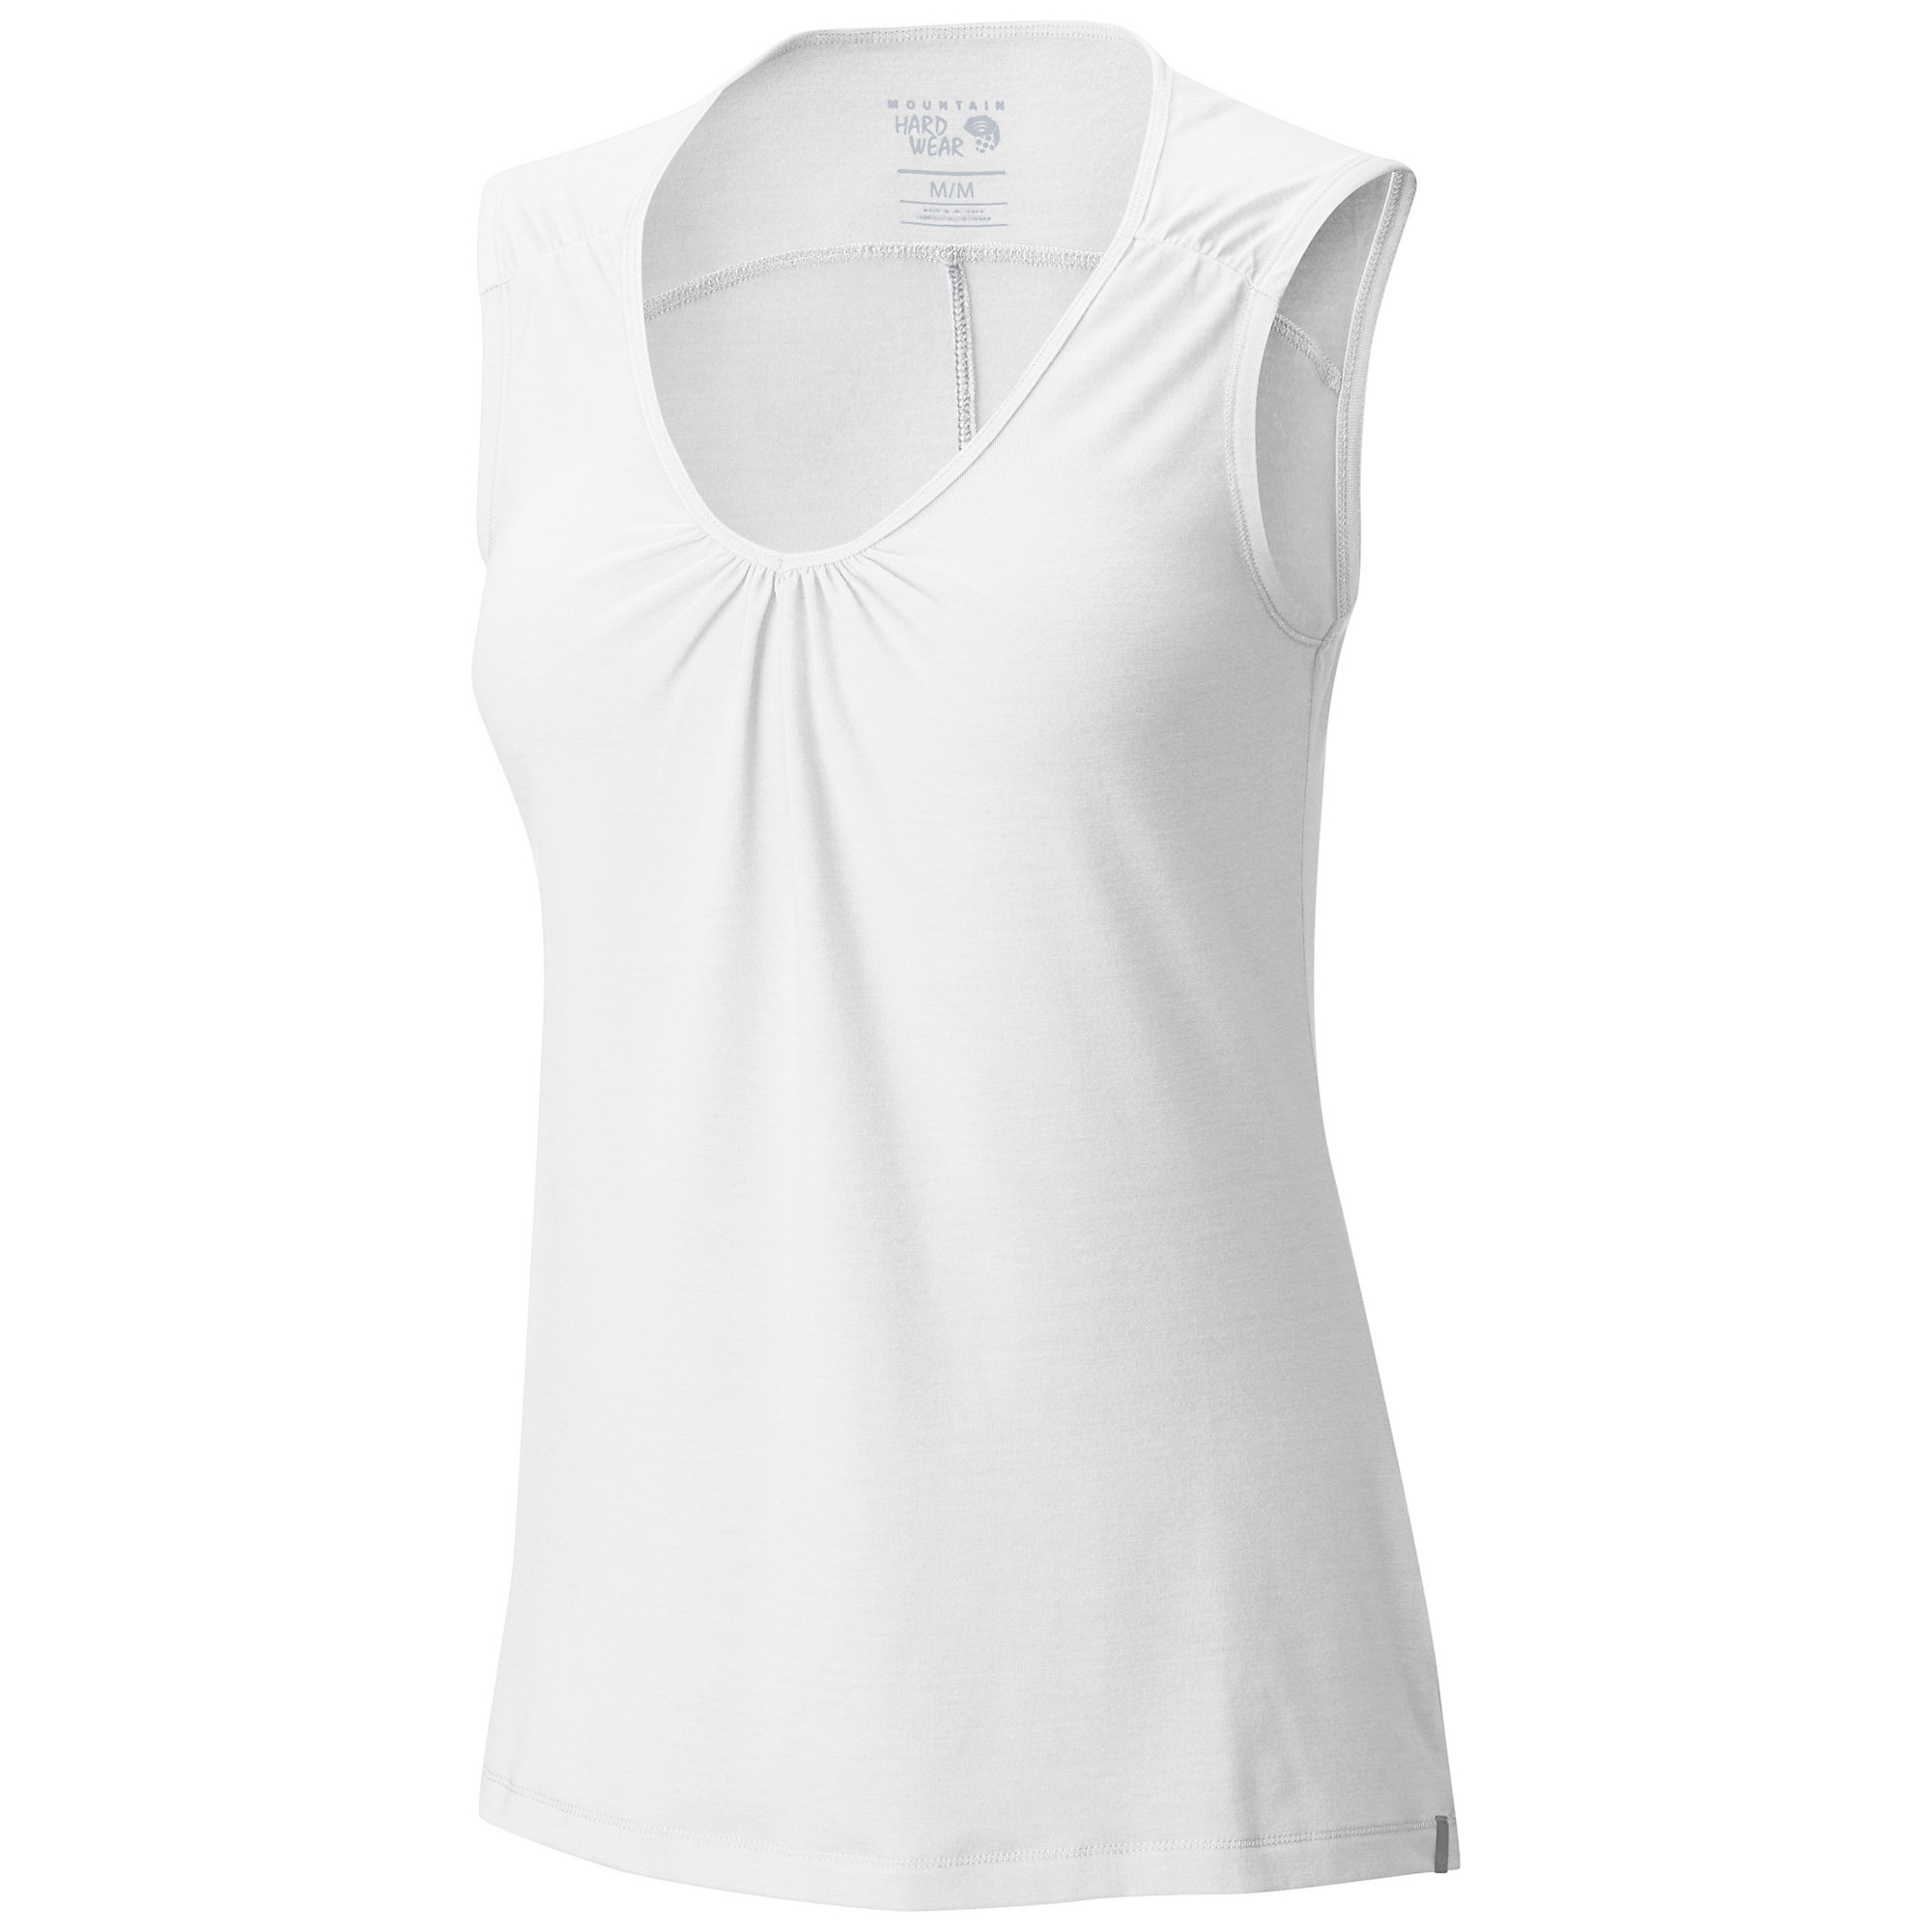 Mountain Hardwear DrySpun Sleeveless T